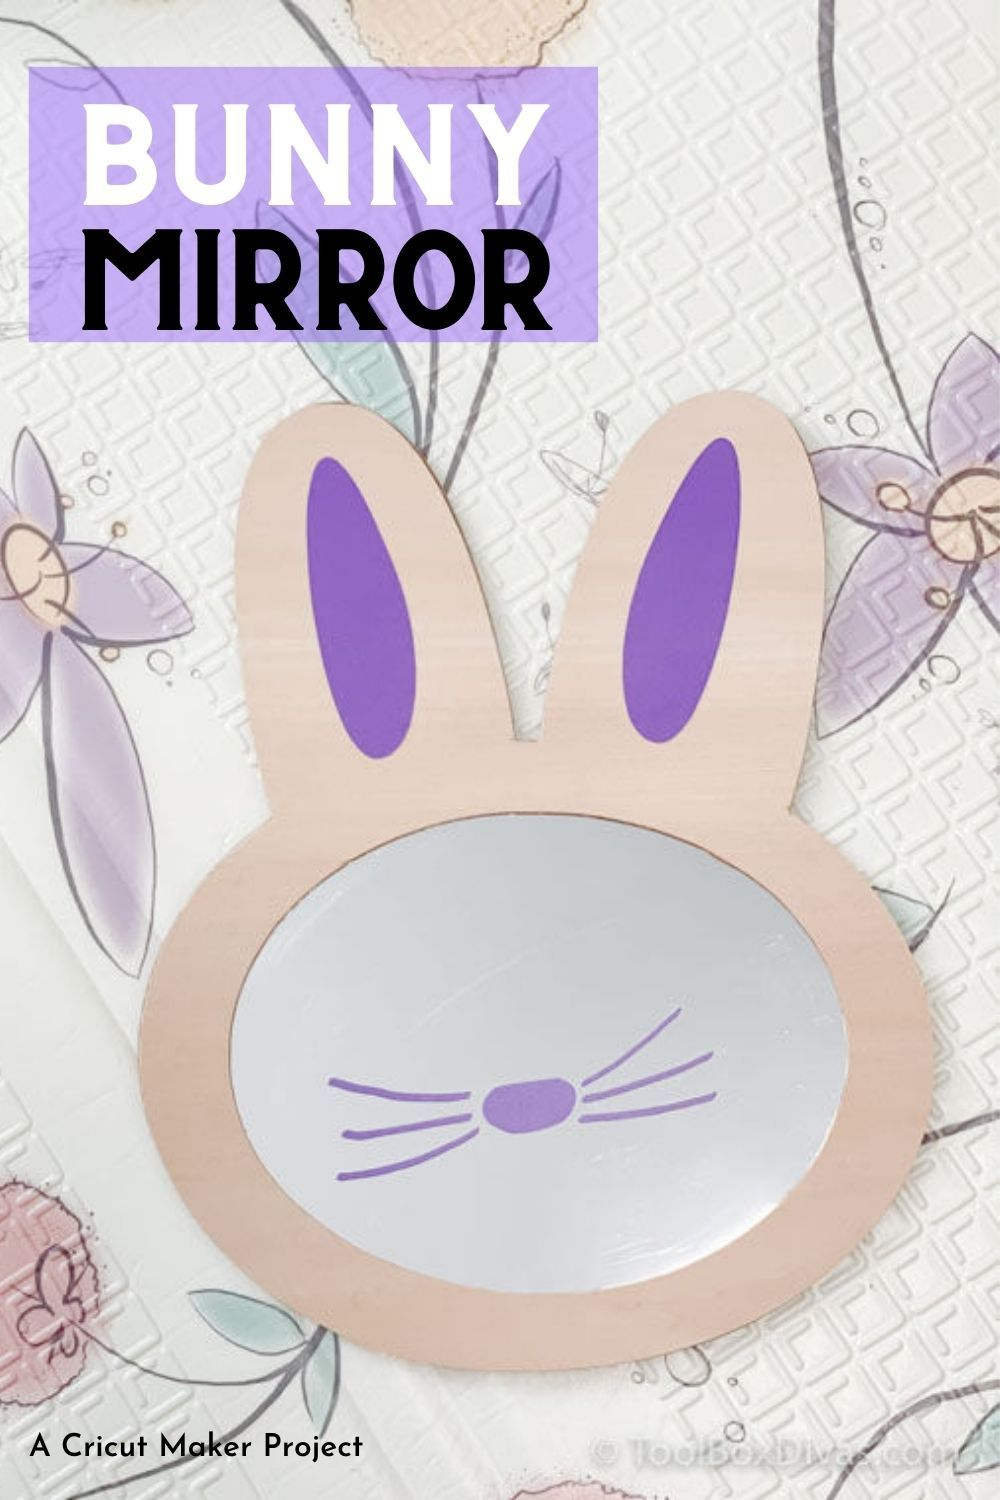 Diy Bunny Mirror With The Cricut Maker In 2021 Unisex Nursery Fun Projects Projects